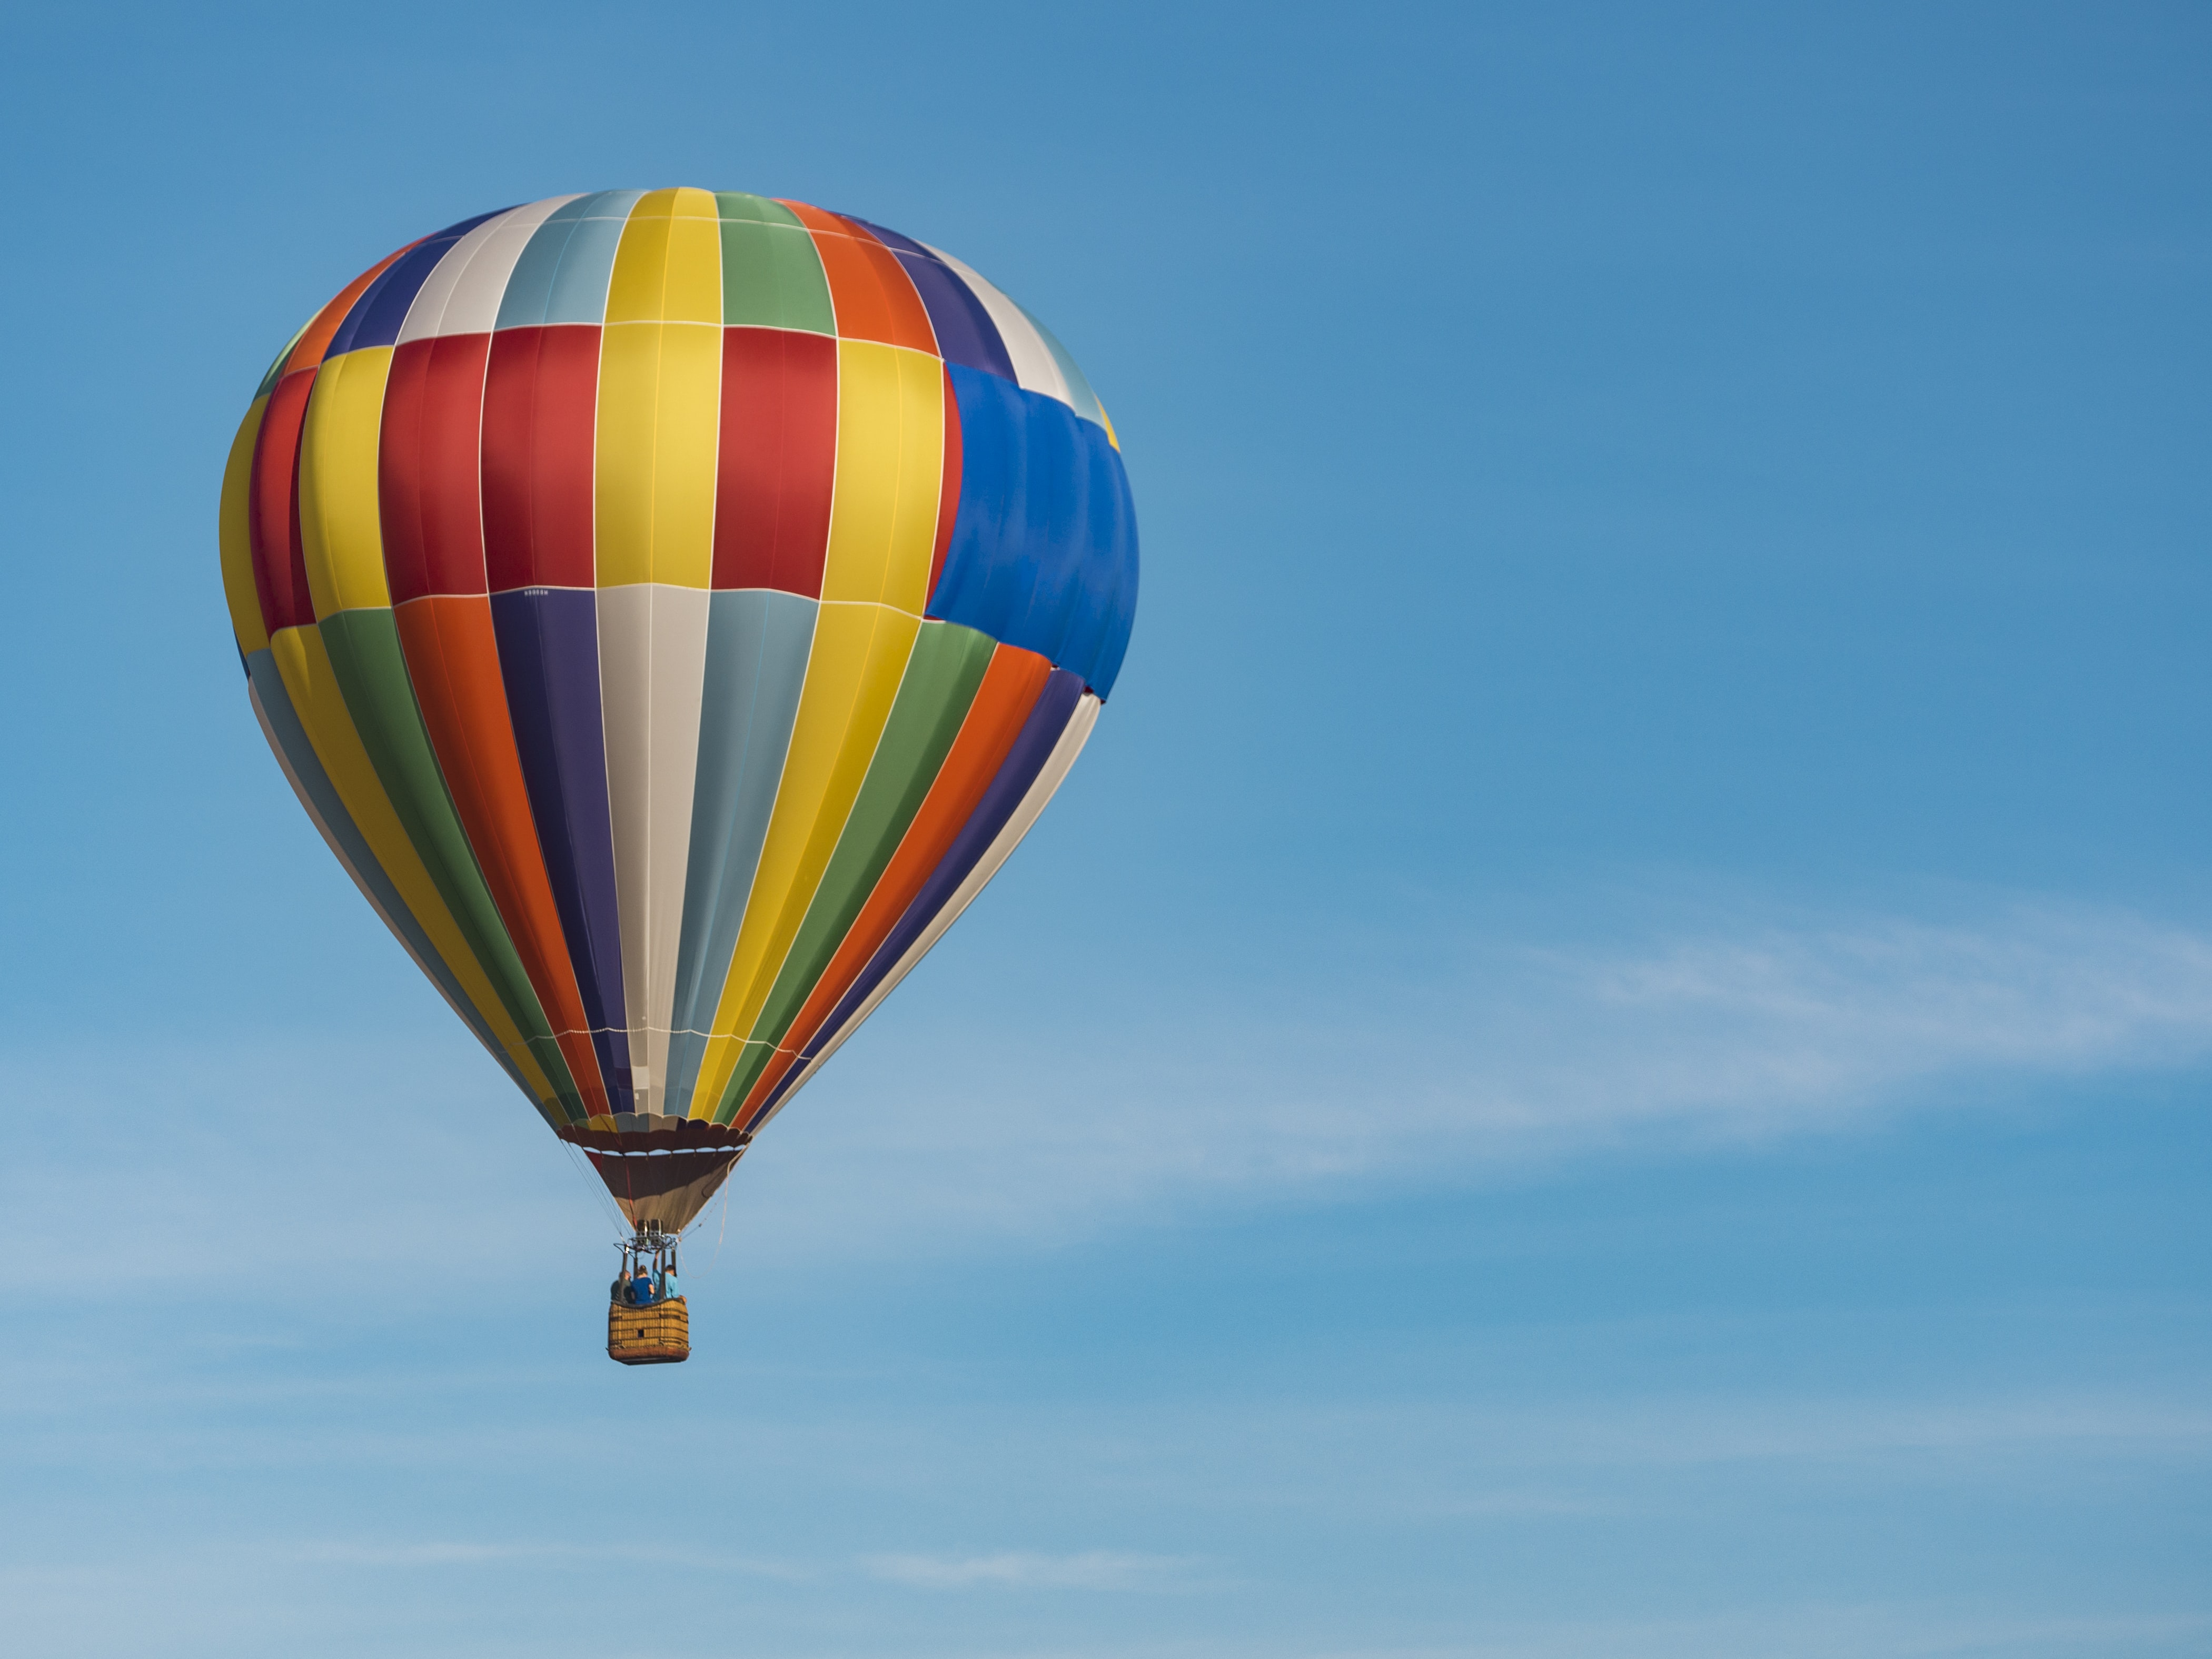 Three people in the basket of a colorful hot air balloon floating against a blue sky